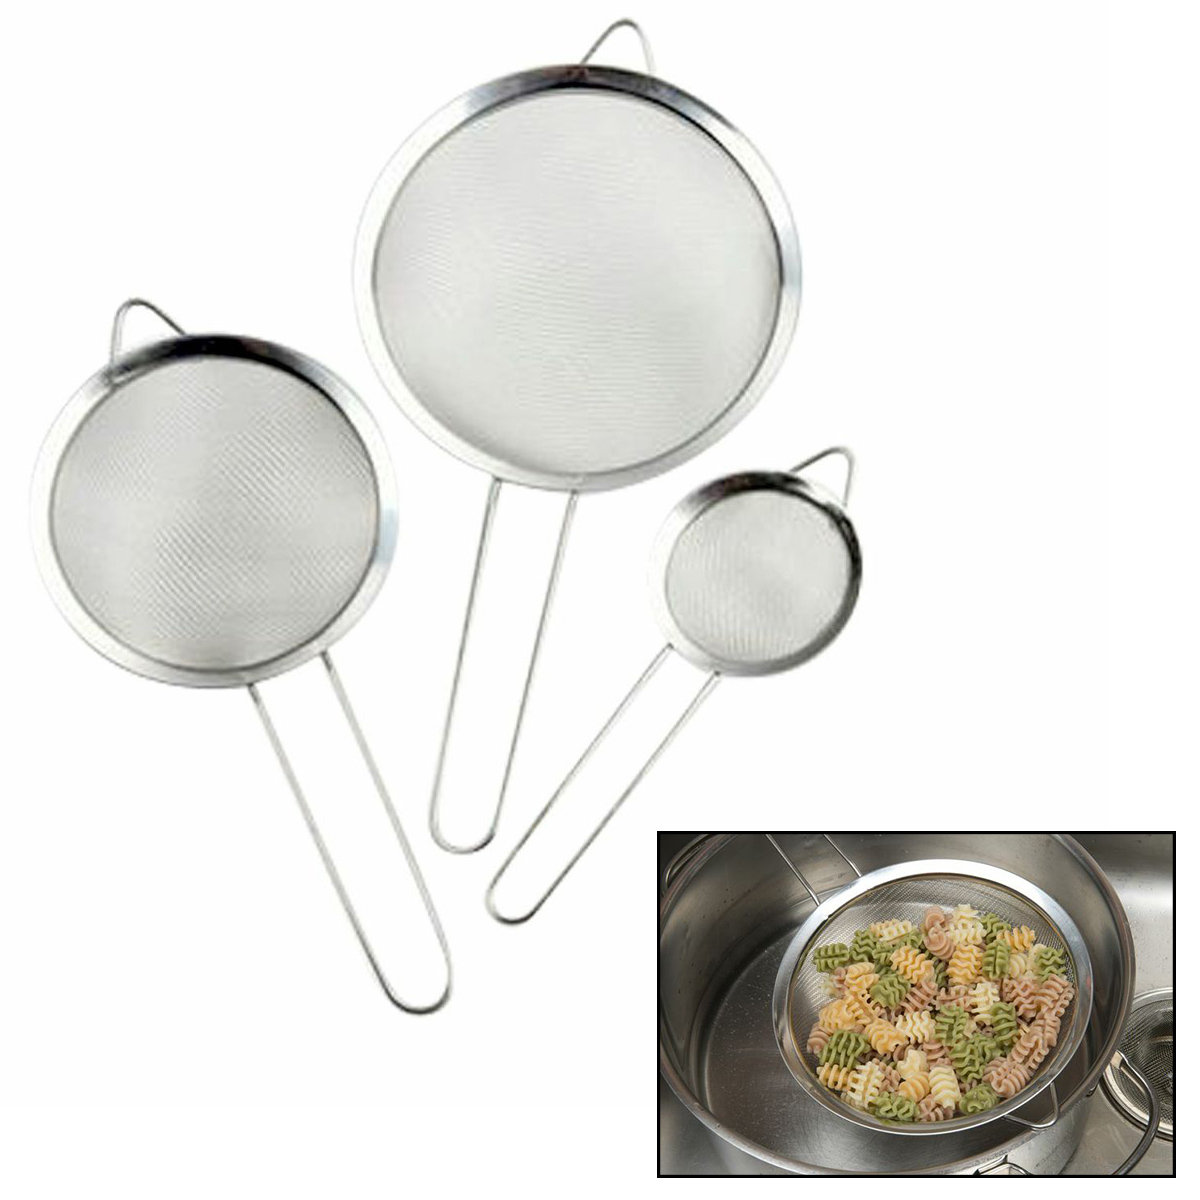 Evelots Set Of 3 Stainless Steel Mesh Strainers For Kitchen Food Rice Pasta By Evelots at Sears.com